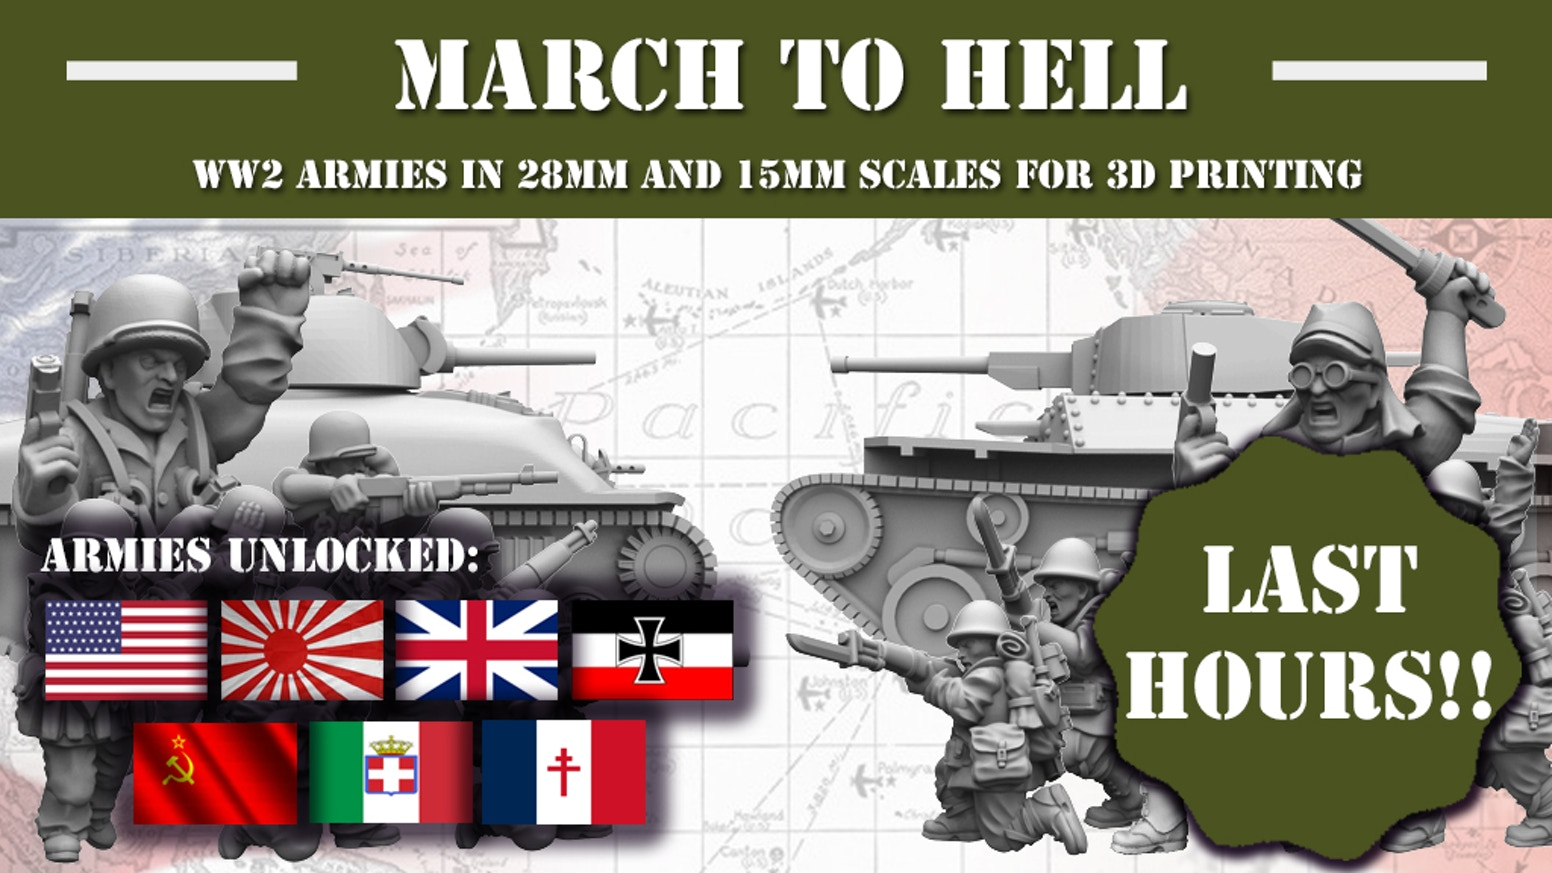 WW2 Armies in 28mm and 15mm scales for 3D printing